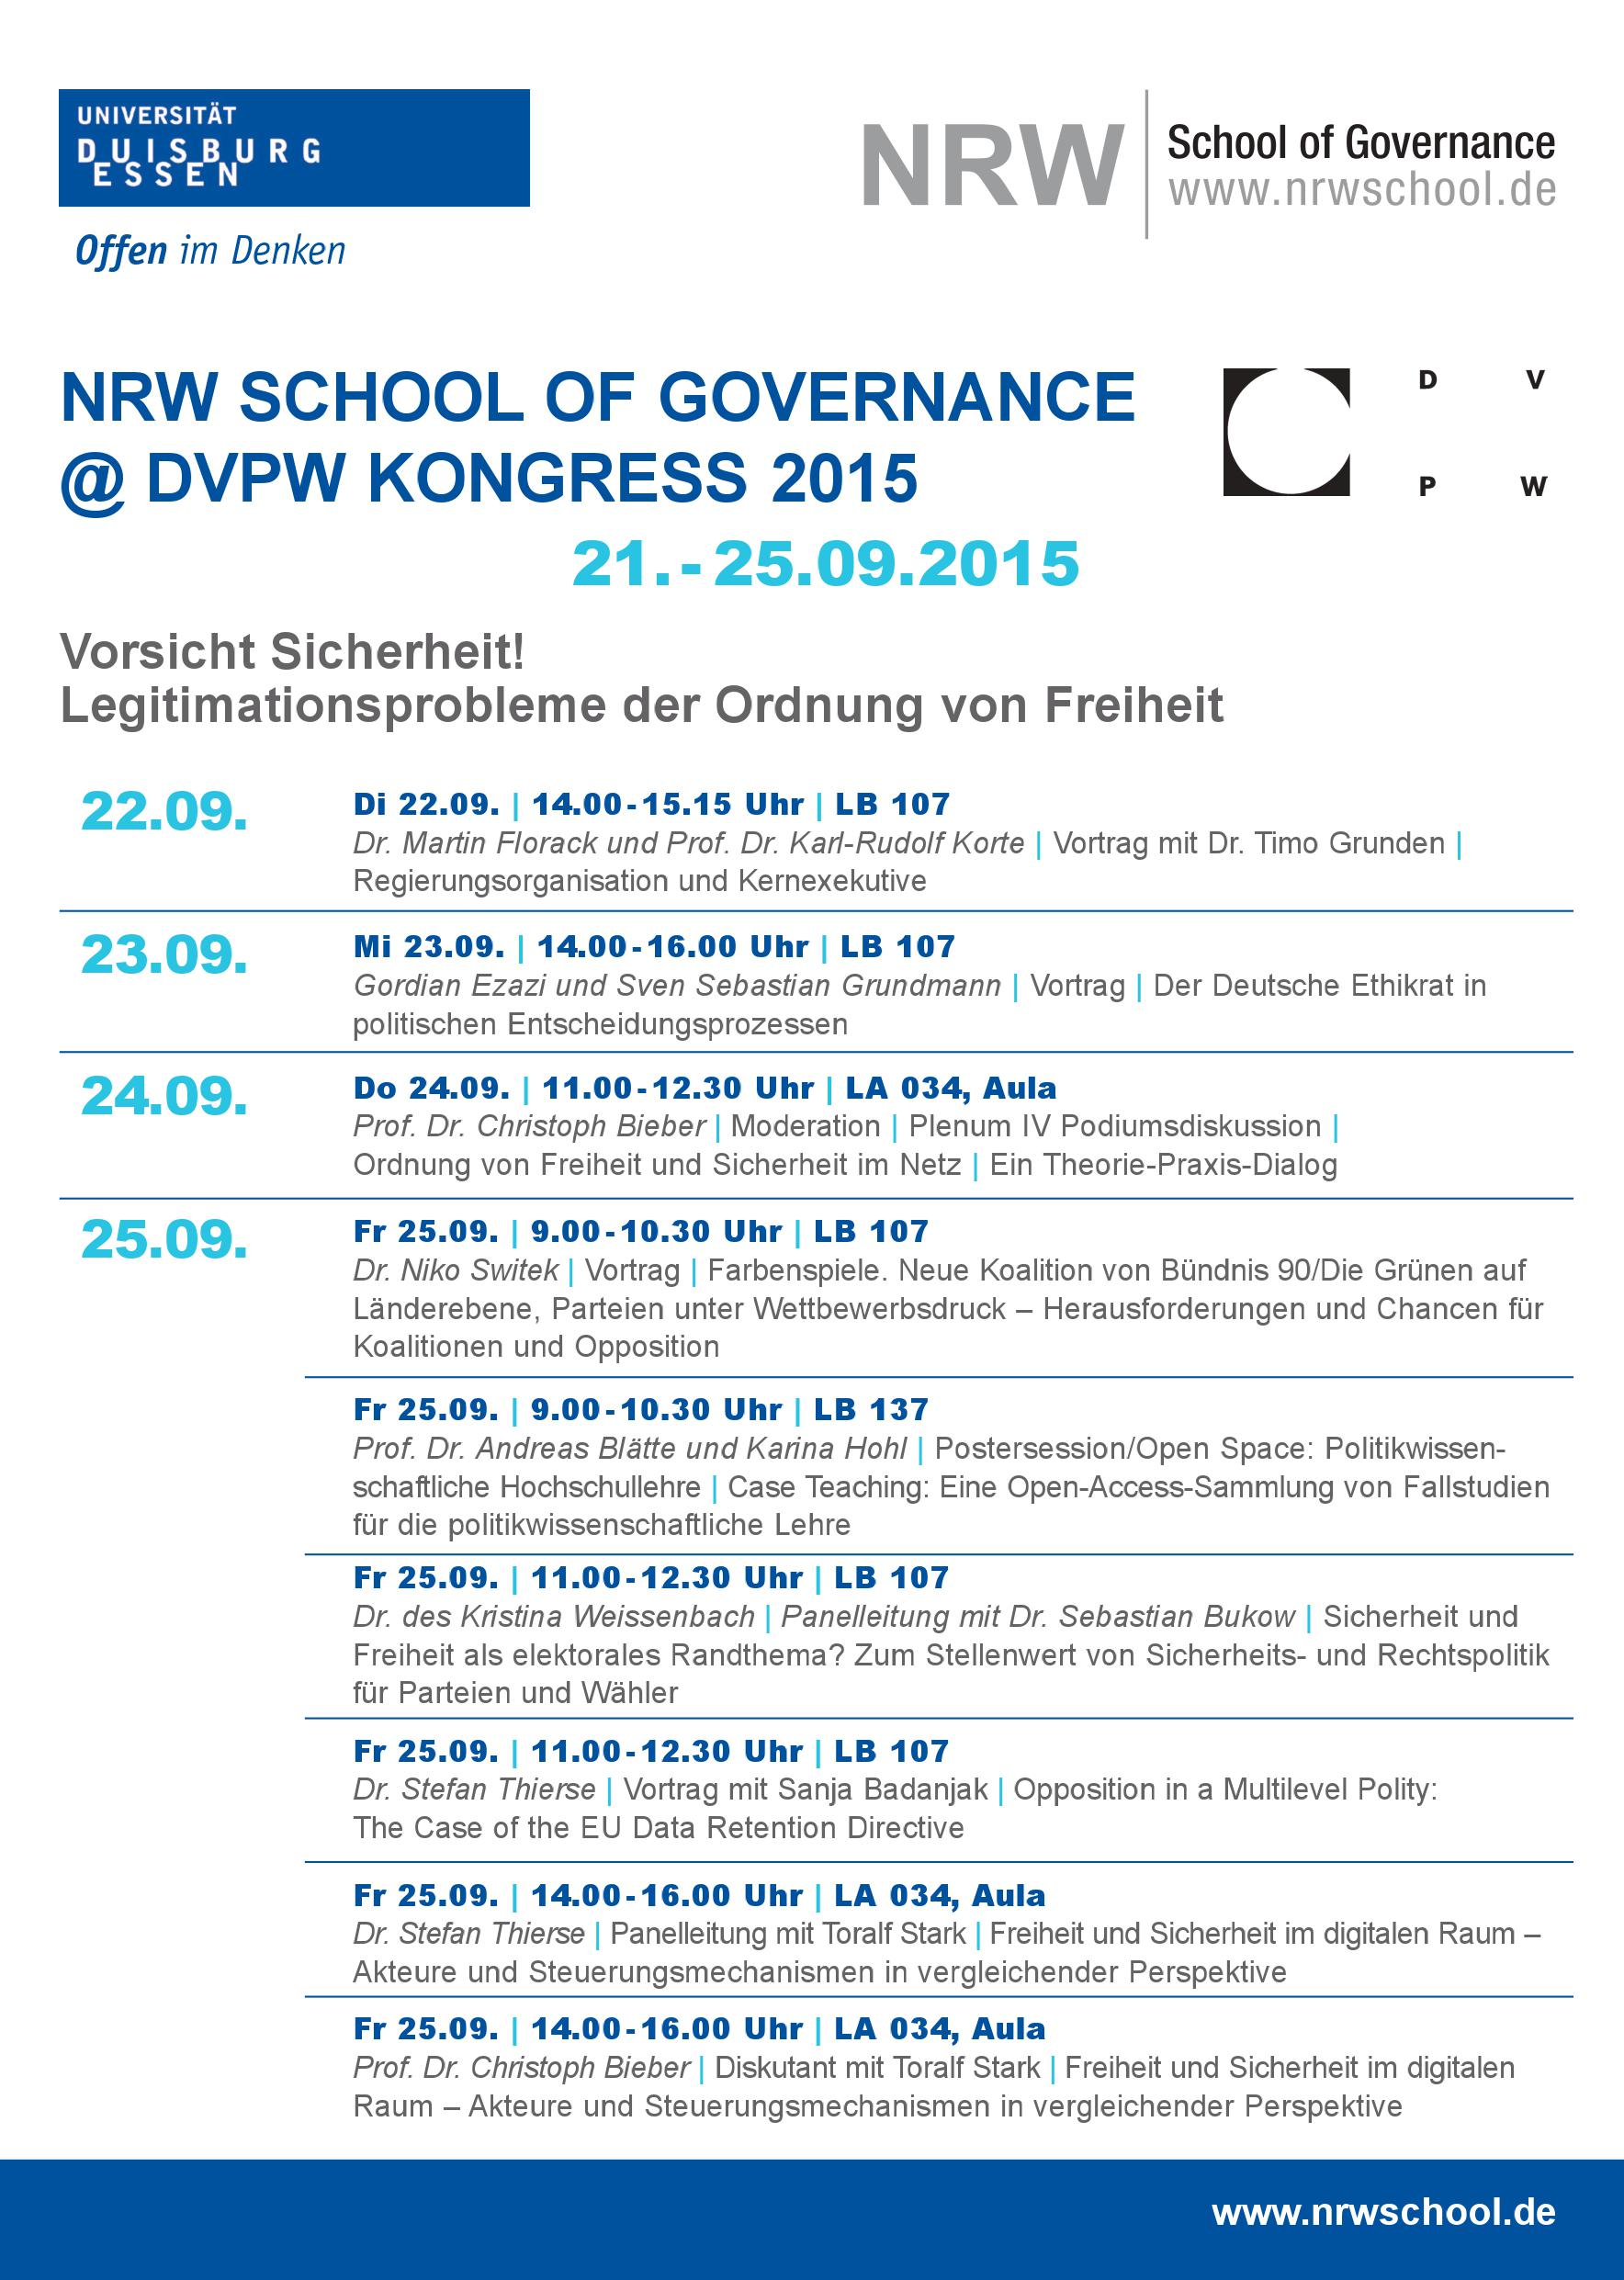 NRW School @ DVPW Kongress 2015 (1)